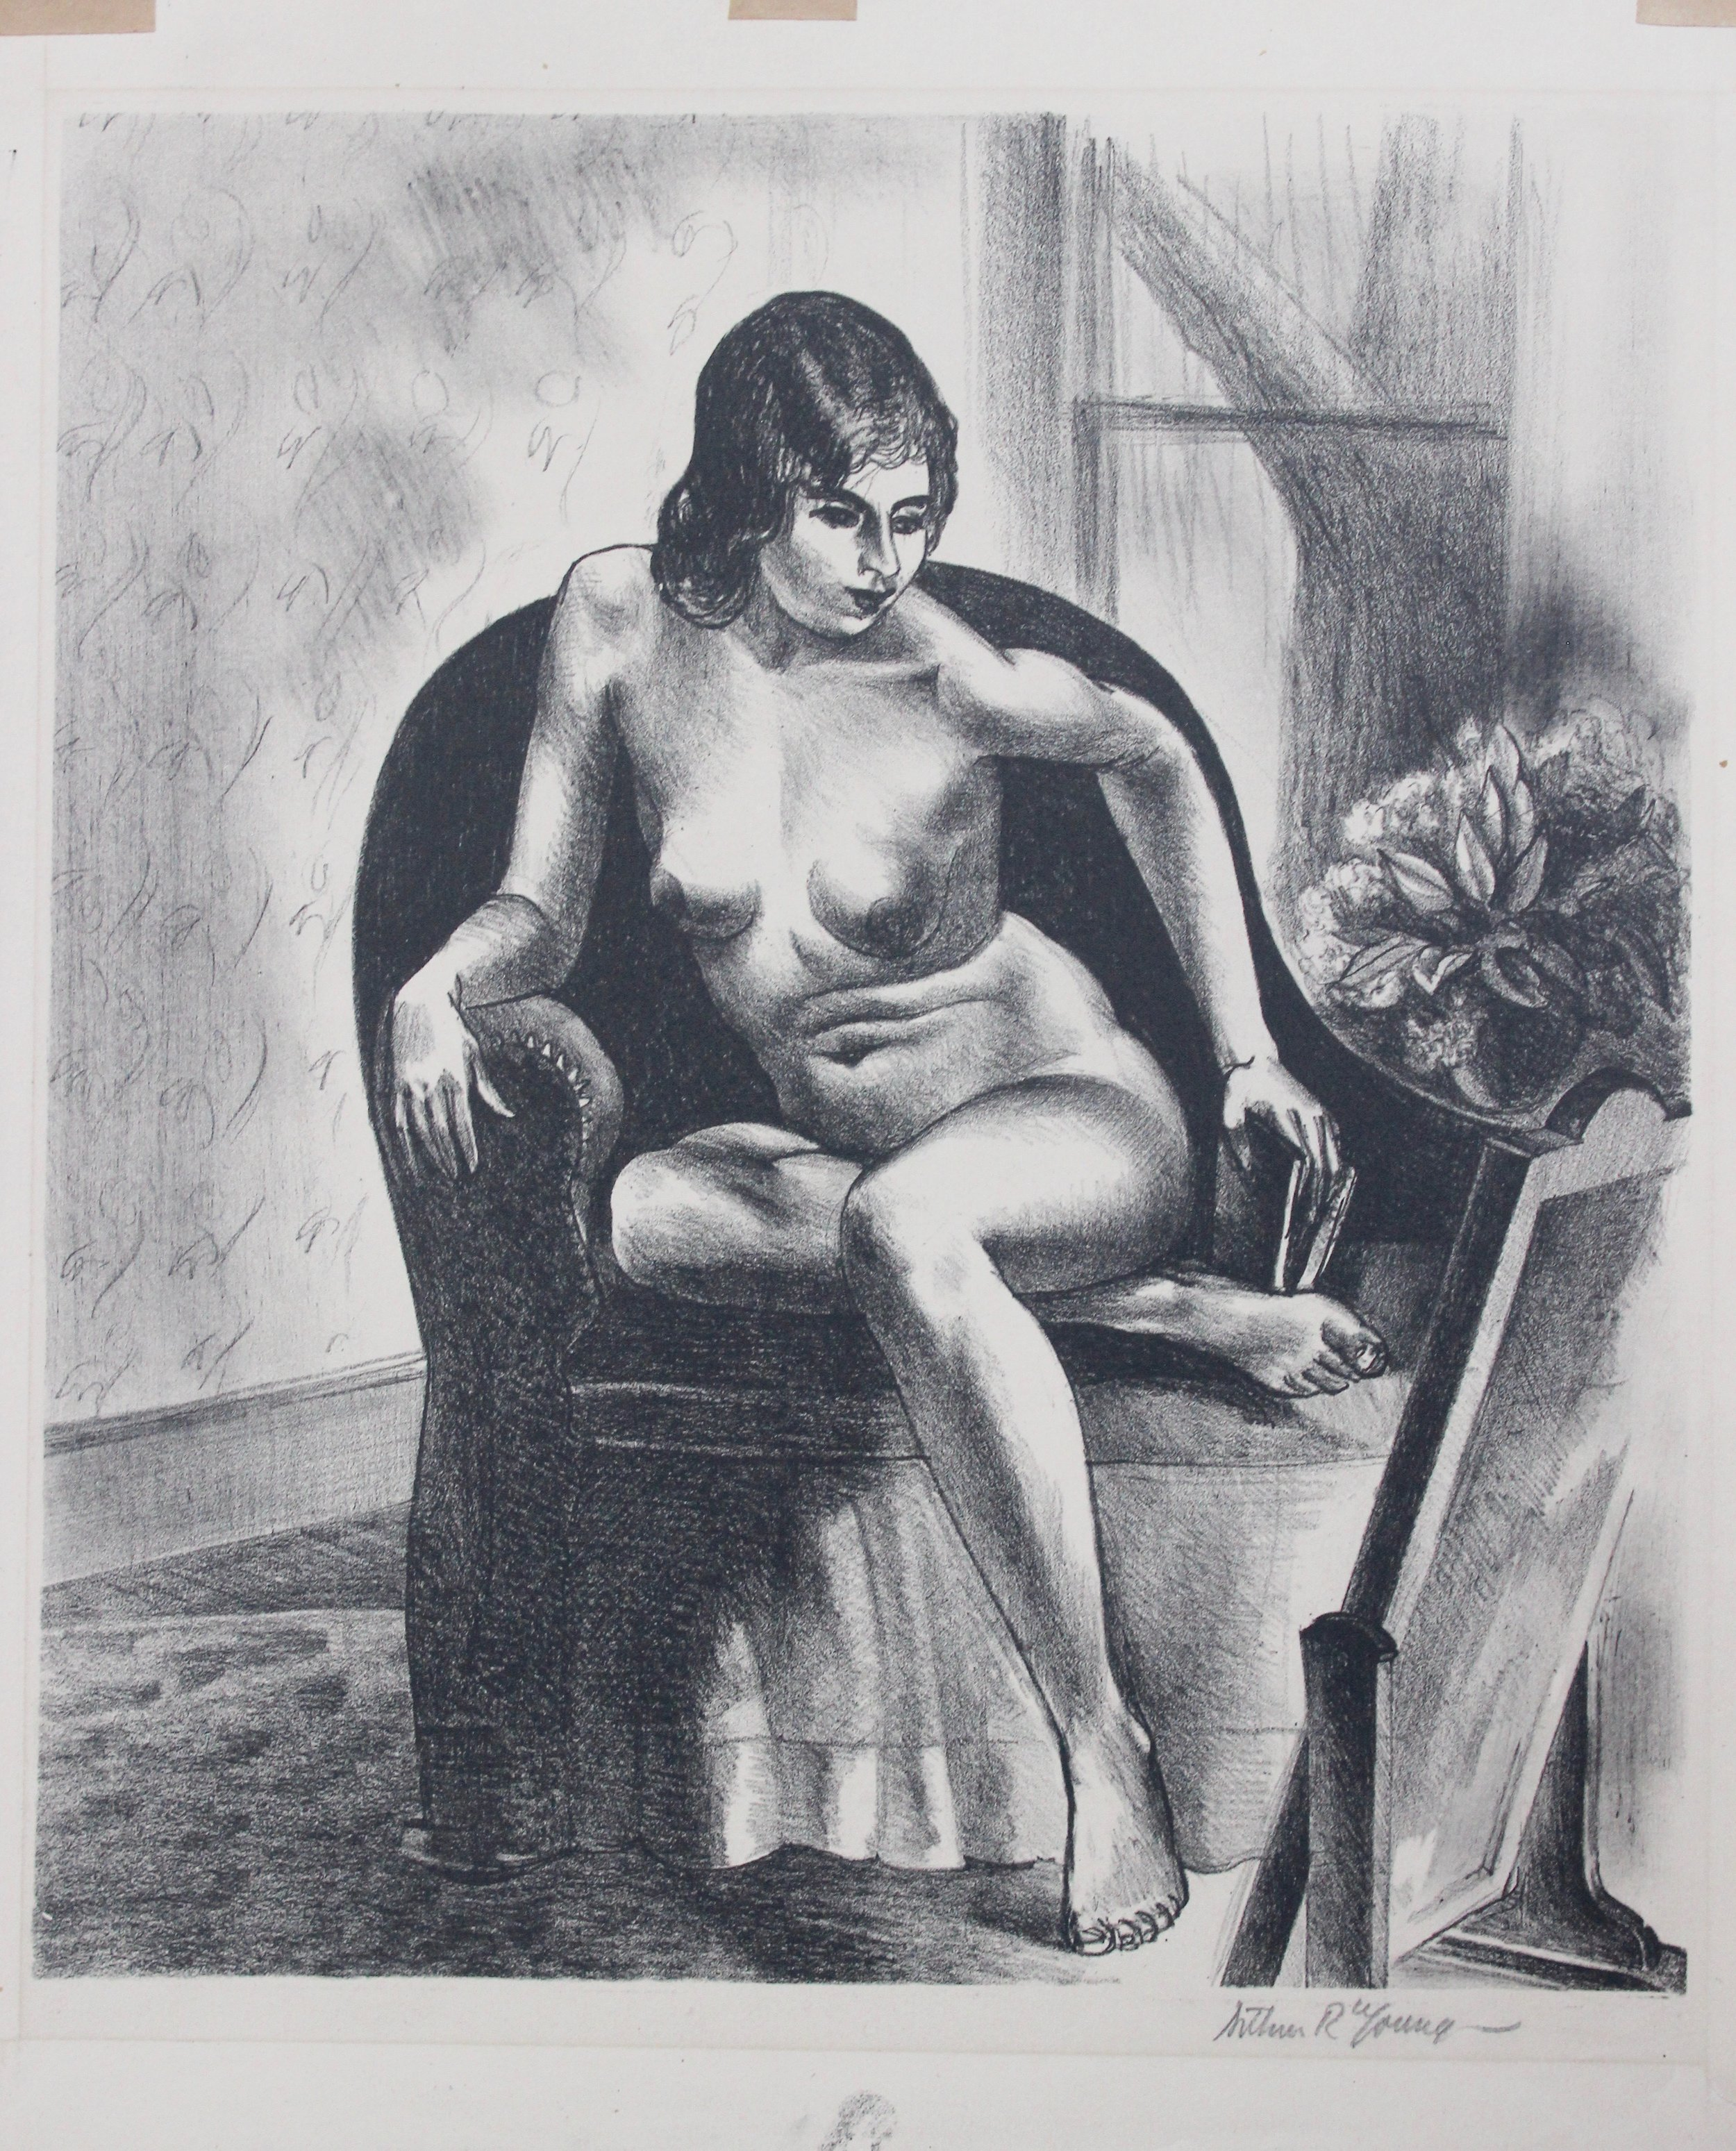 Arthur R. Young, Untitled (nude seated in chair), c. 1930